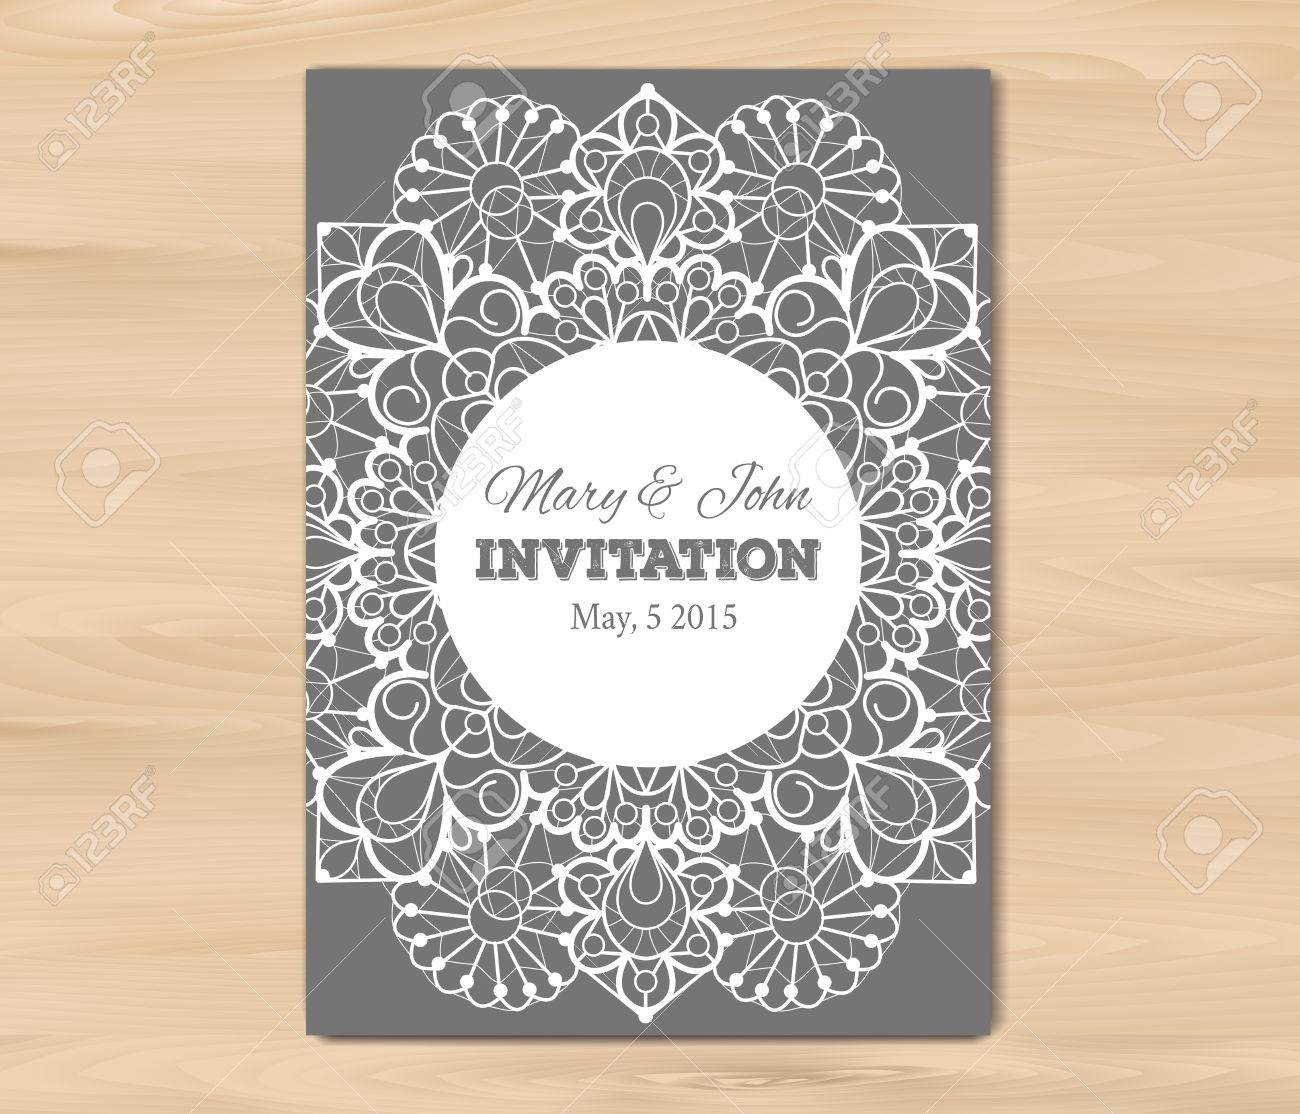 Wedding Invitation, Card Template On A Wooden Background. Vintage ...